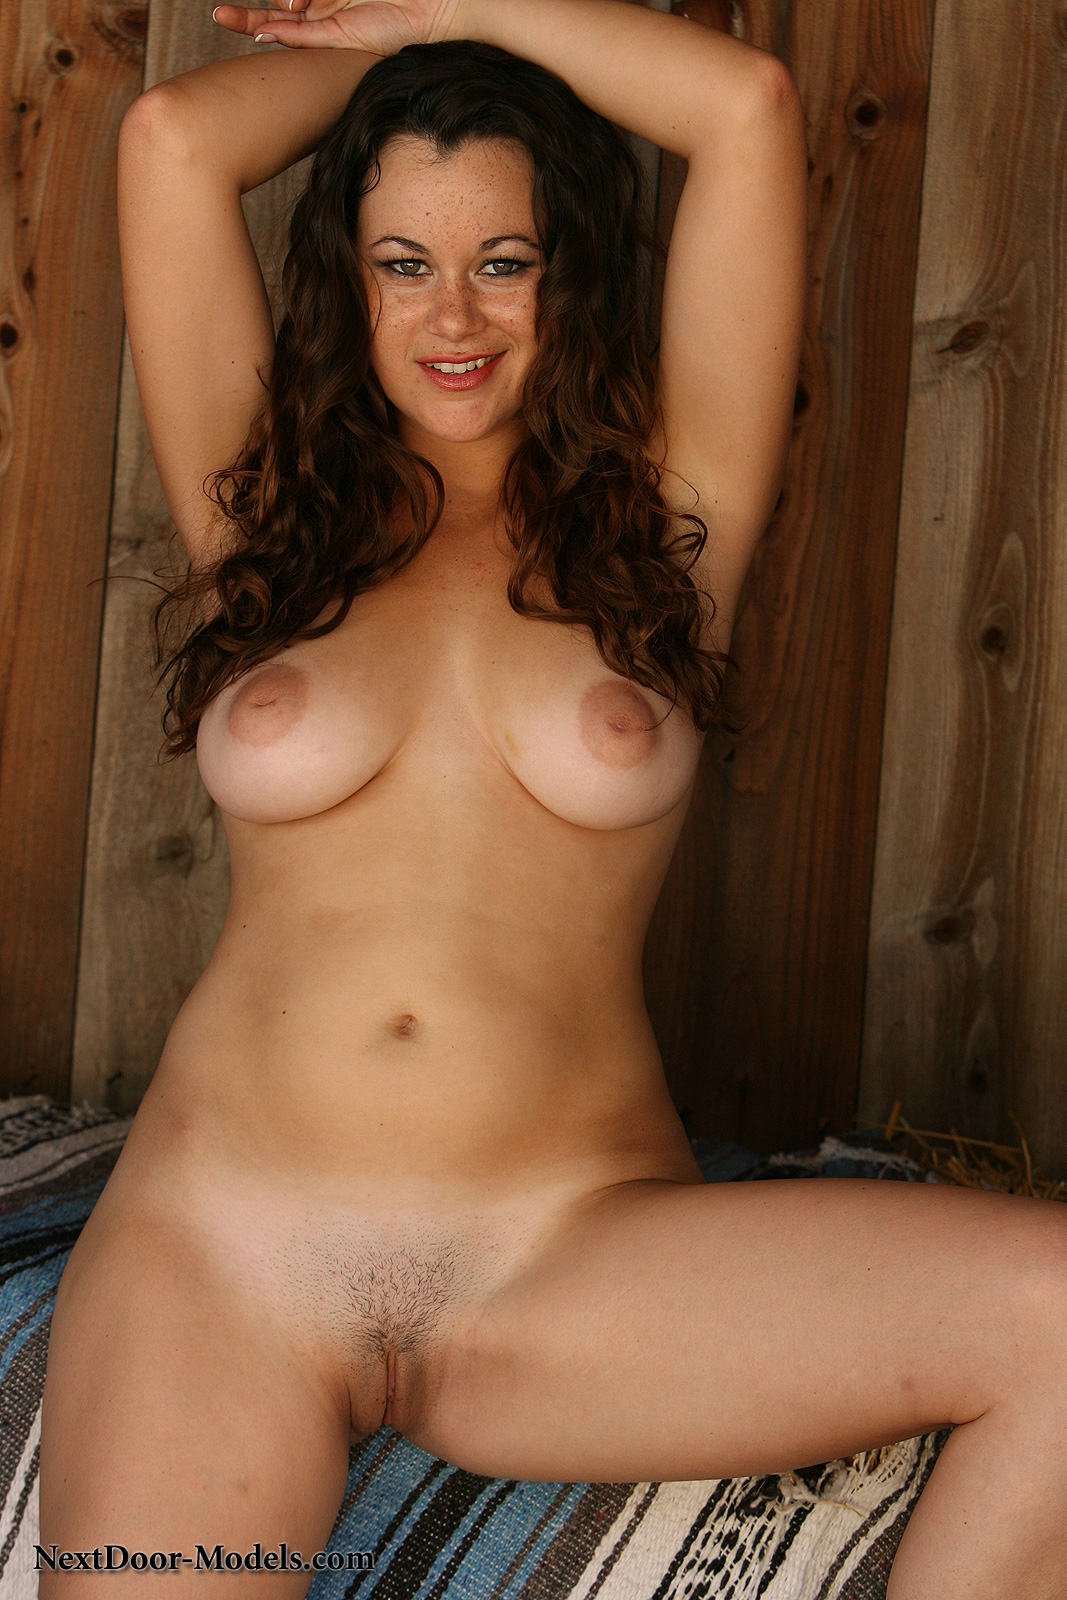 are mistaken. bbw lesbain with midget with monster clit entertaining phrase Excuse, that